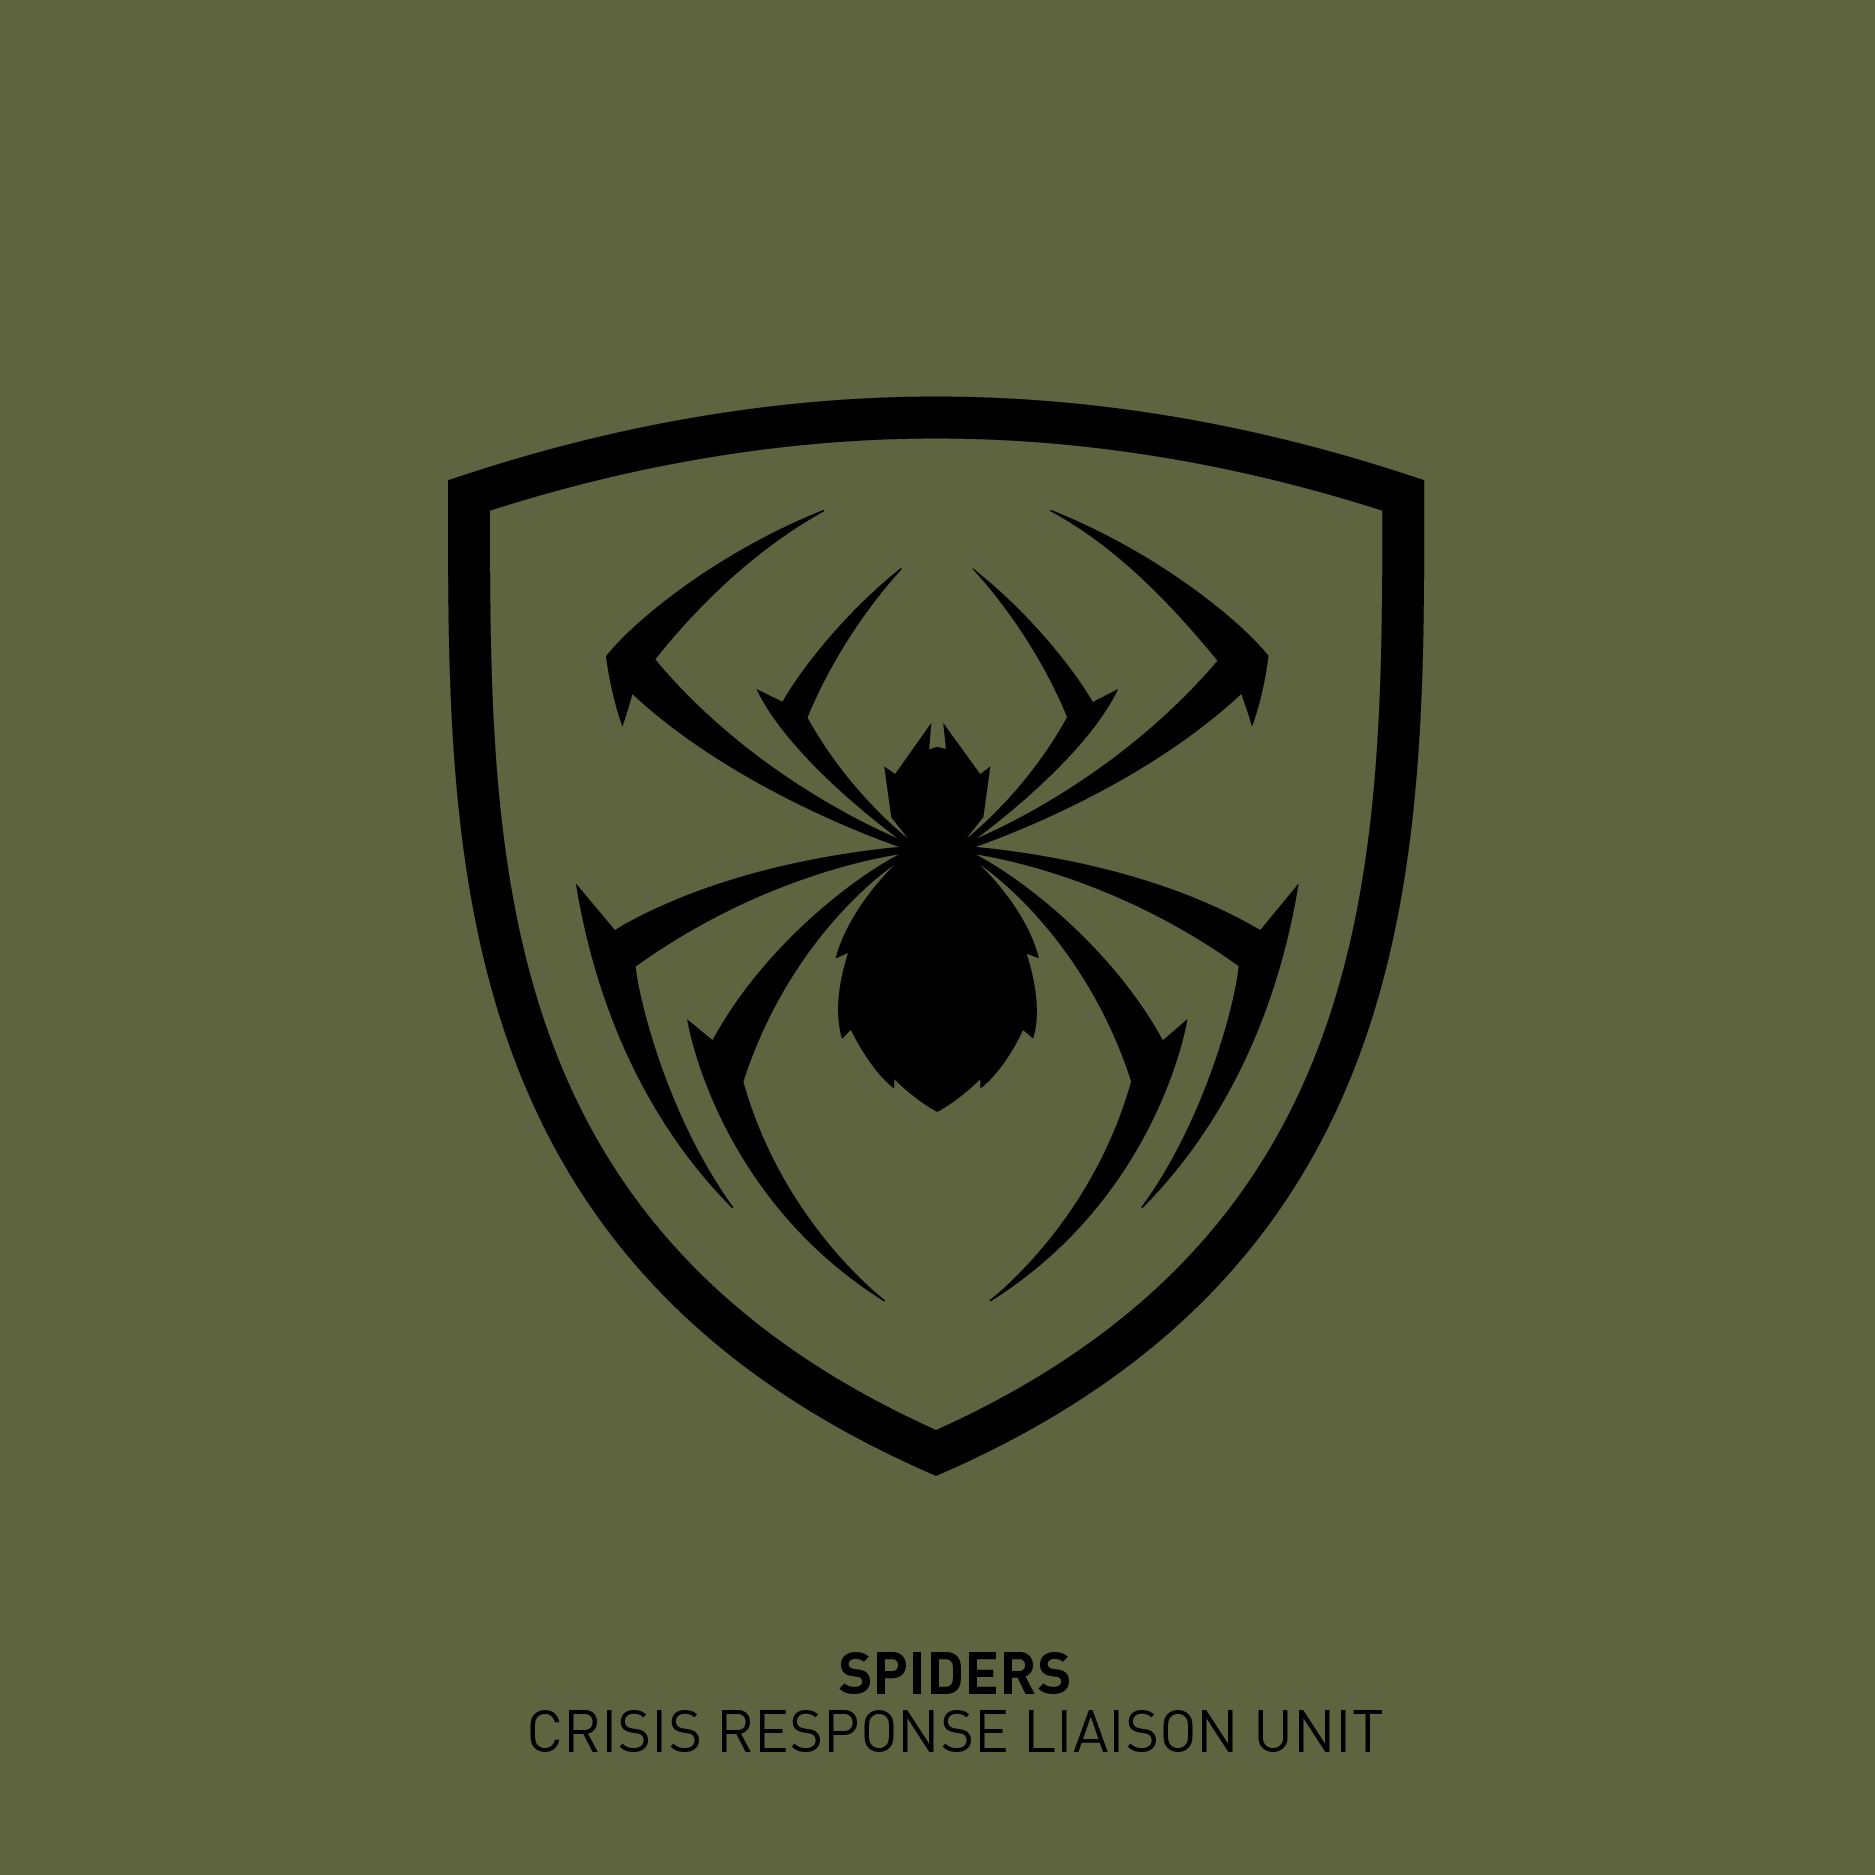 06spiders-01